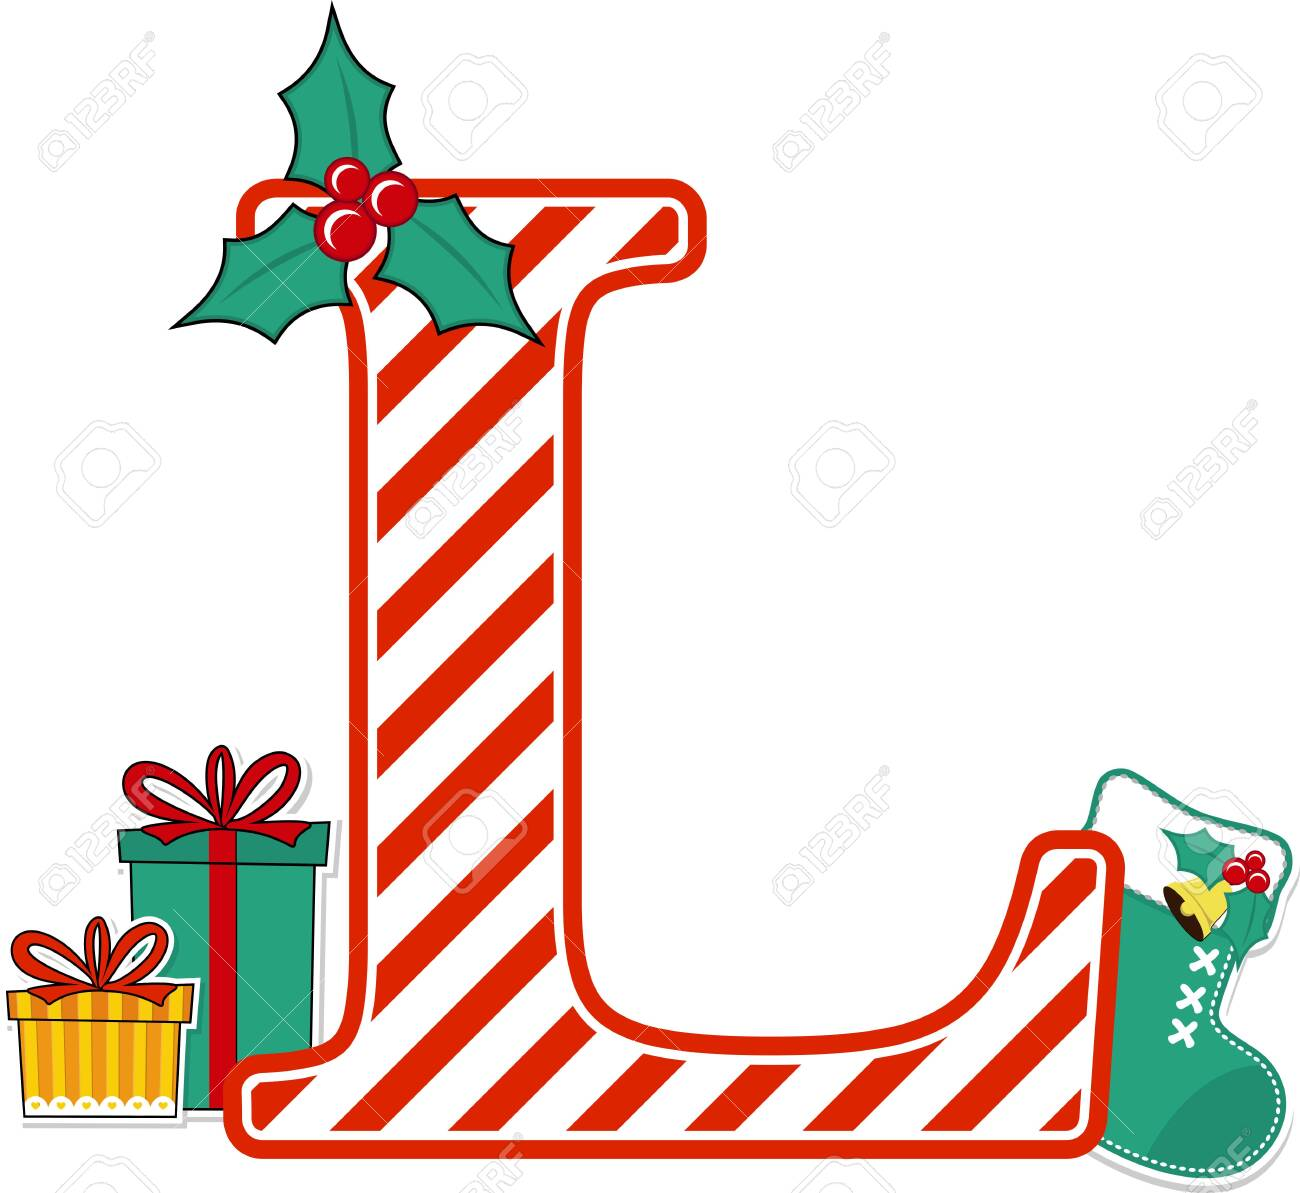 capital letter l with red and white candy cane pattern and christmas design elements isolated on white background. can be used for holiday season card, nursery decoration or christmas paty invitation - 133824864